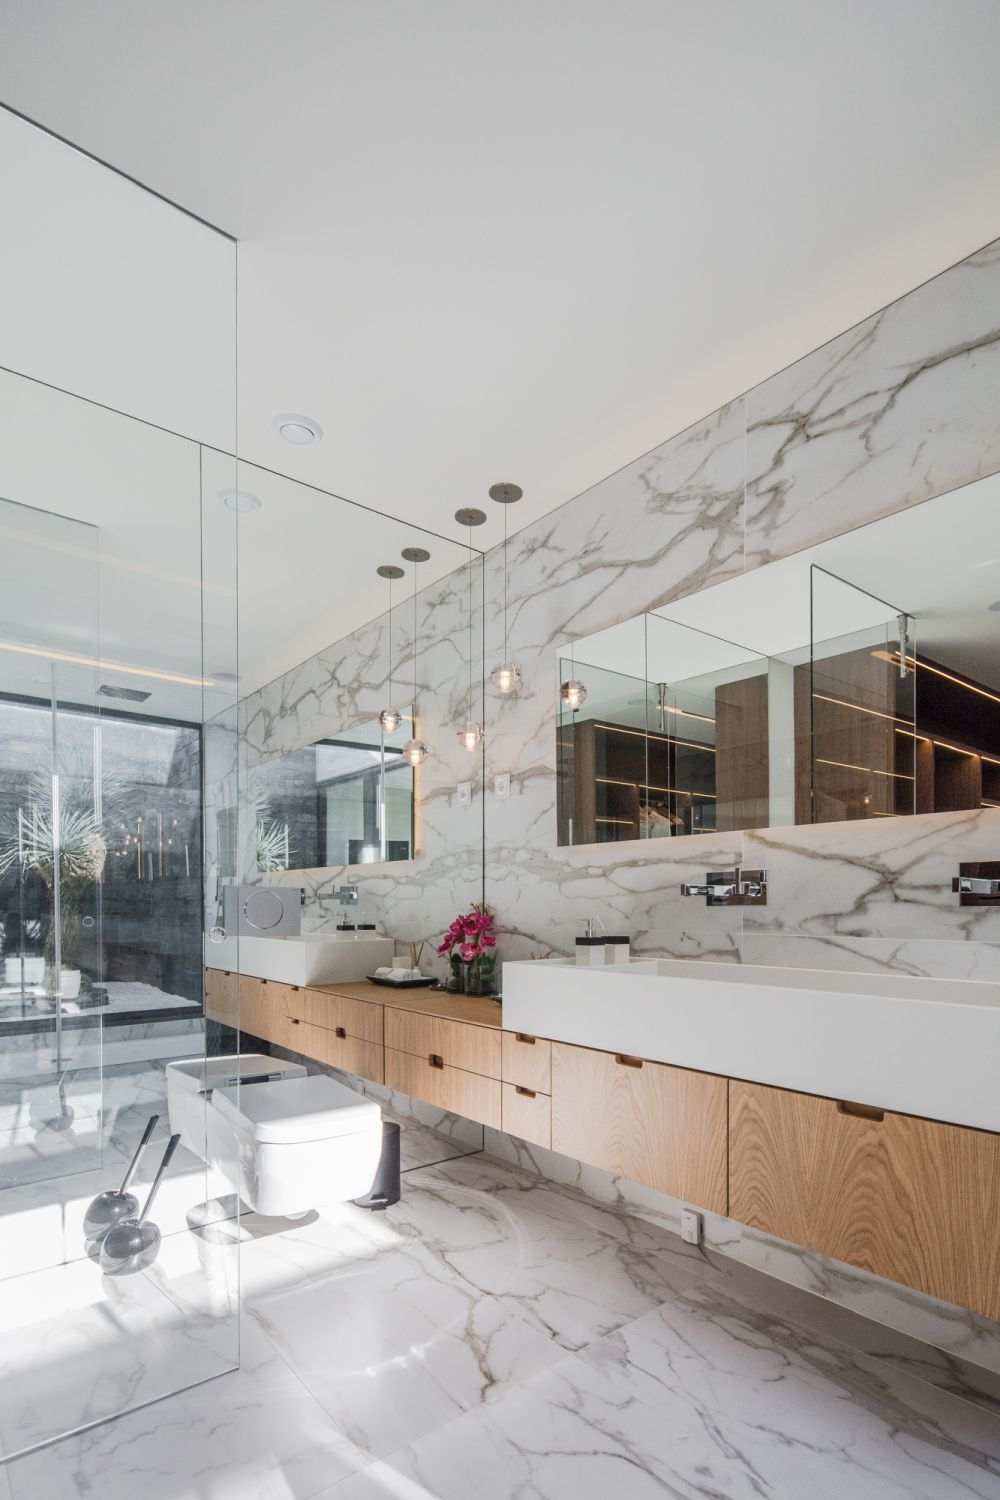 The master bathroom features an eclectic design with marble walls and flooring and large mirrors